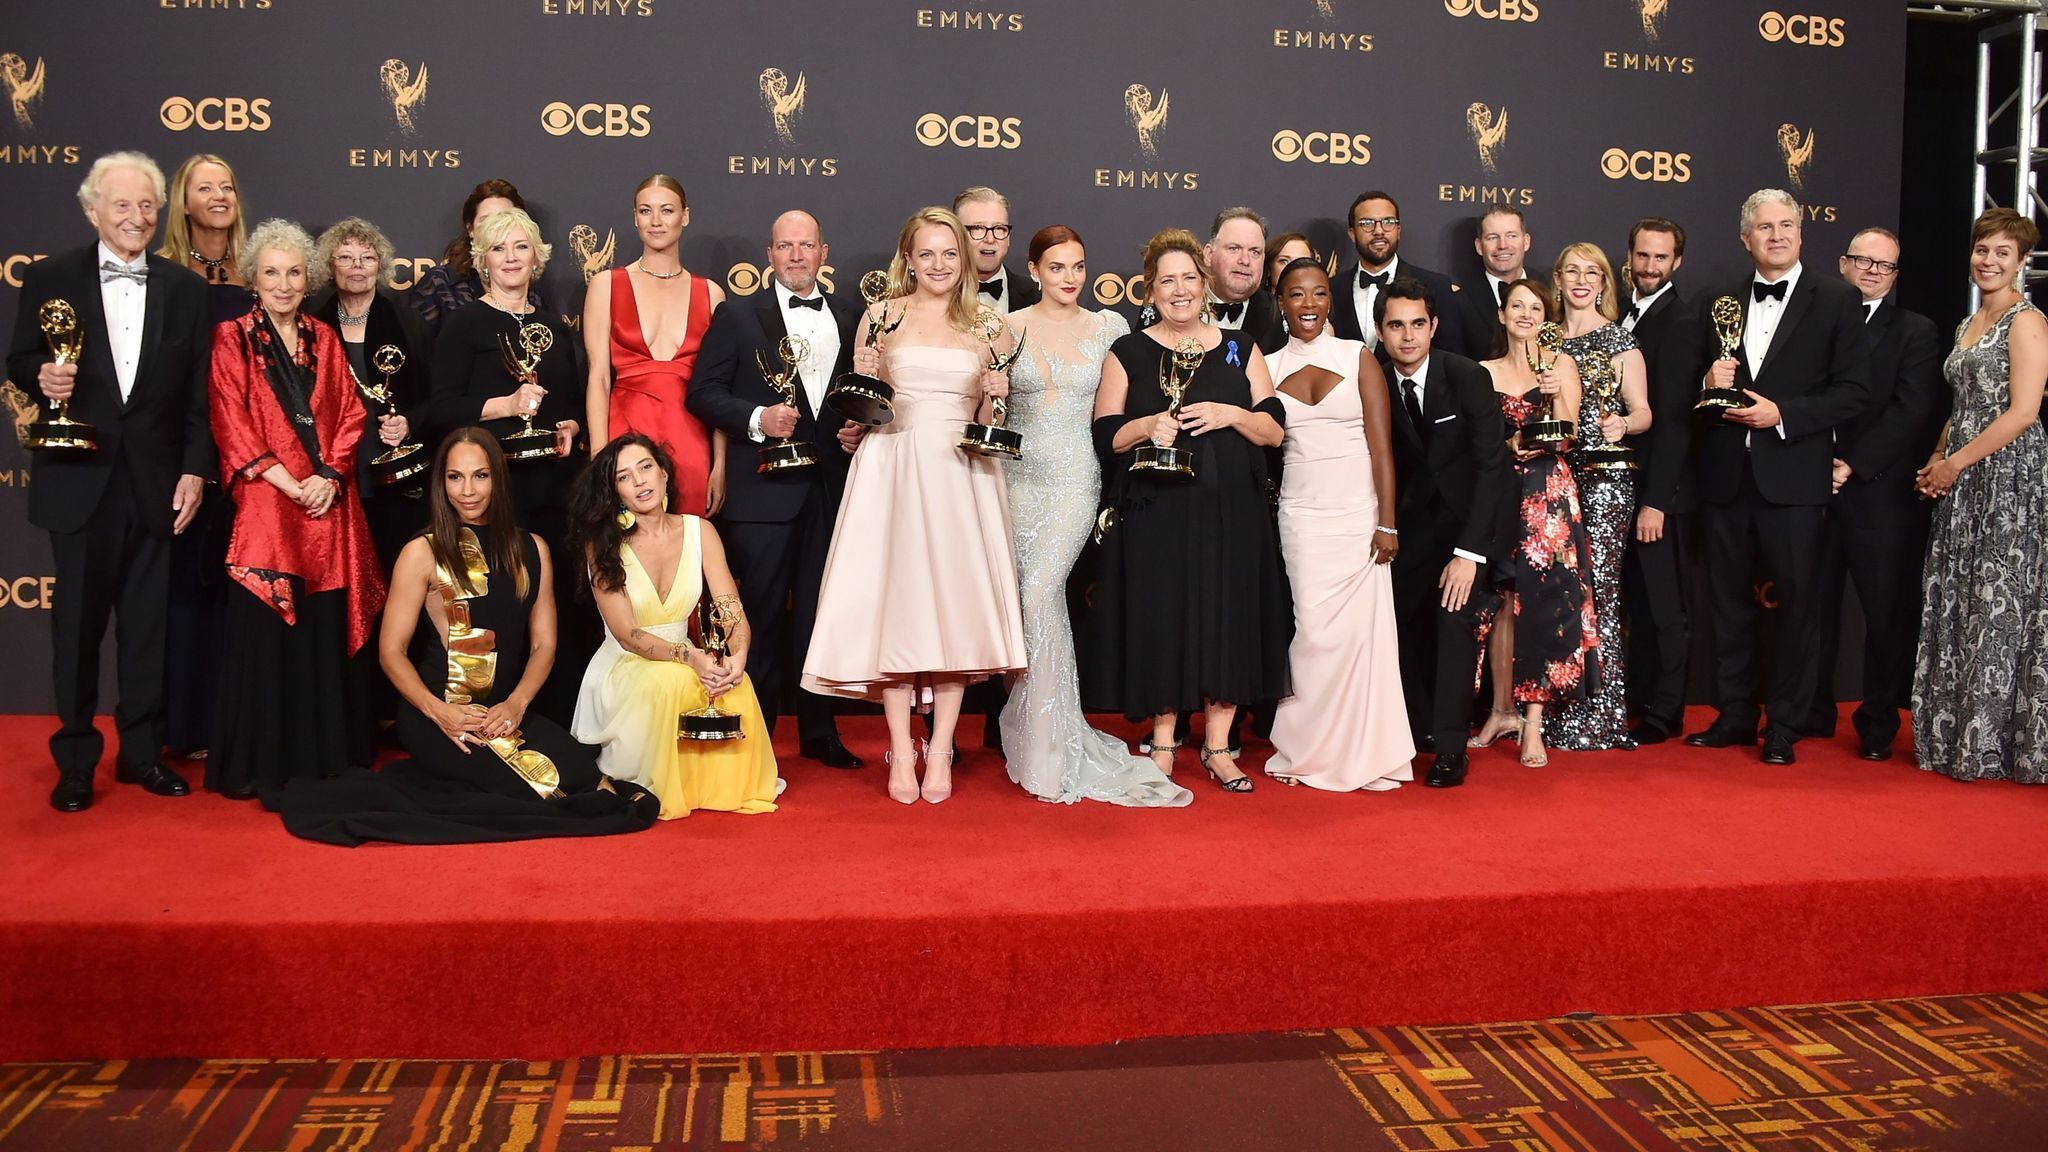 With Hulu's top Emmy win for 'The Handmaid's Tale' a